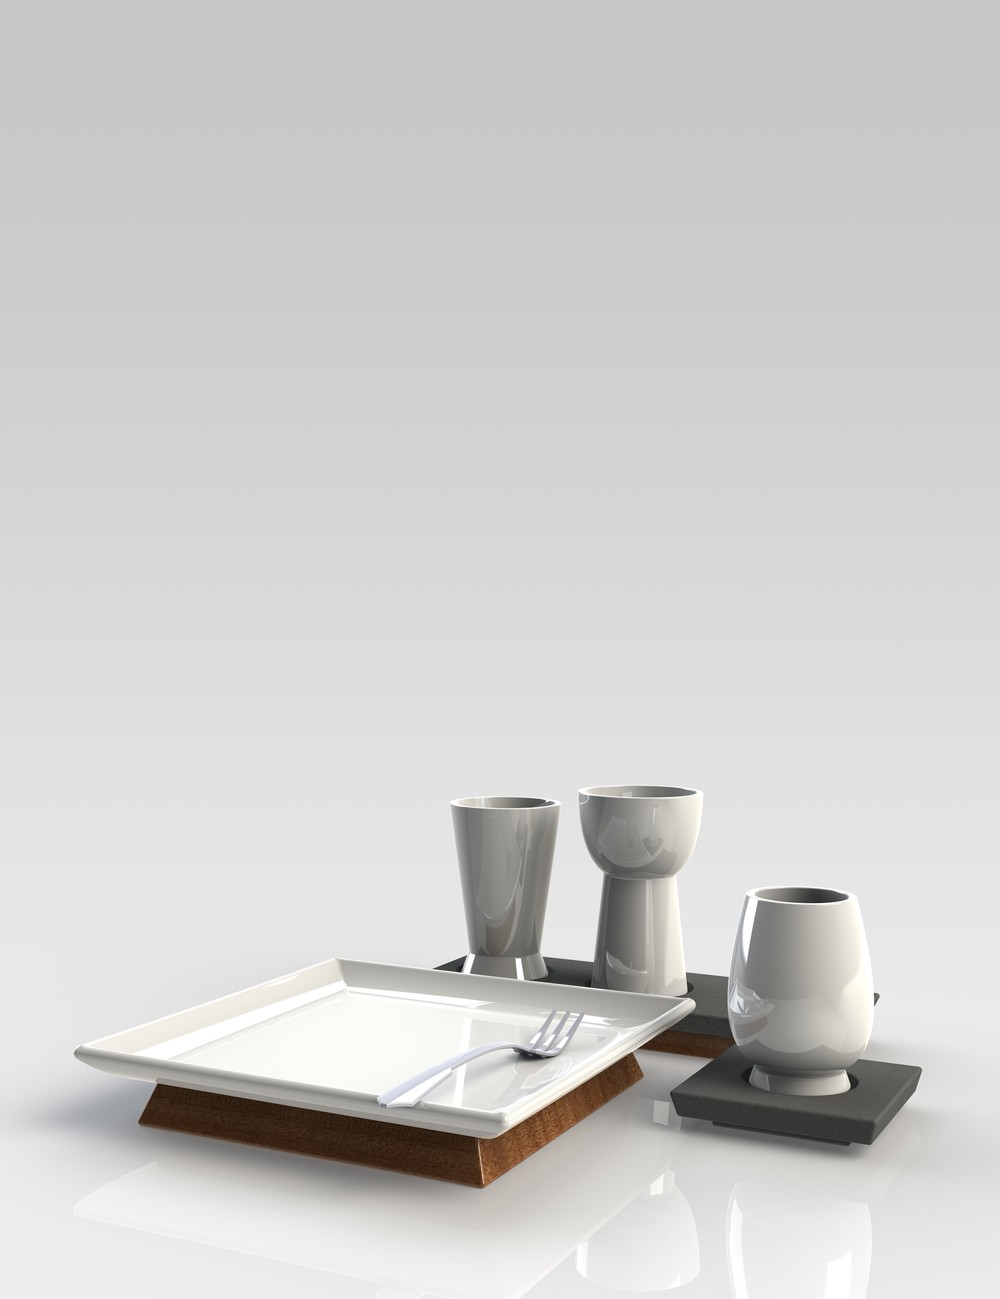 Rendering of dessert setting and tea set